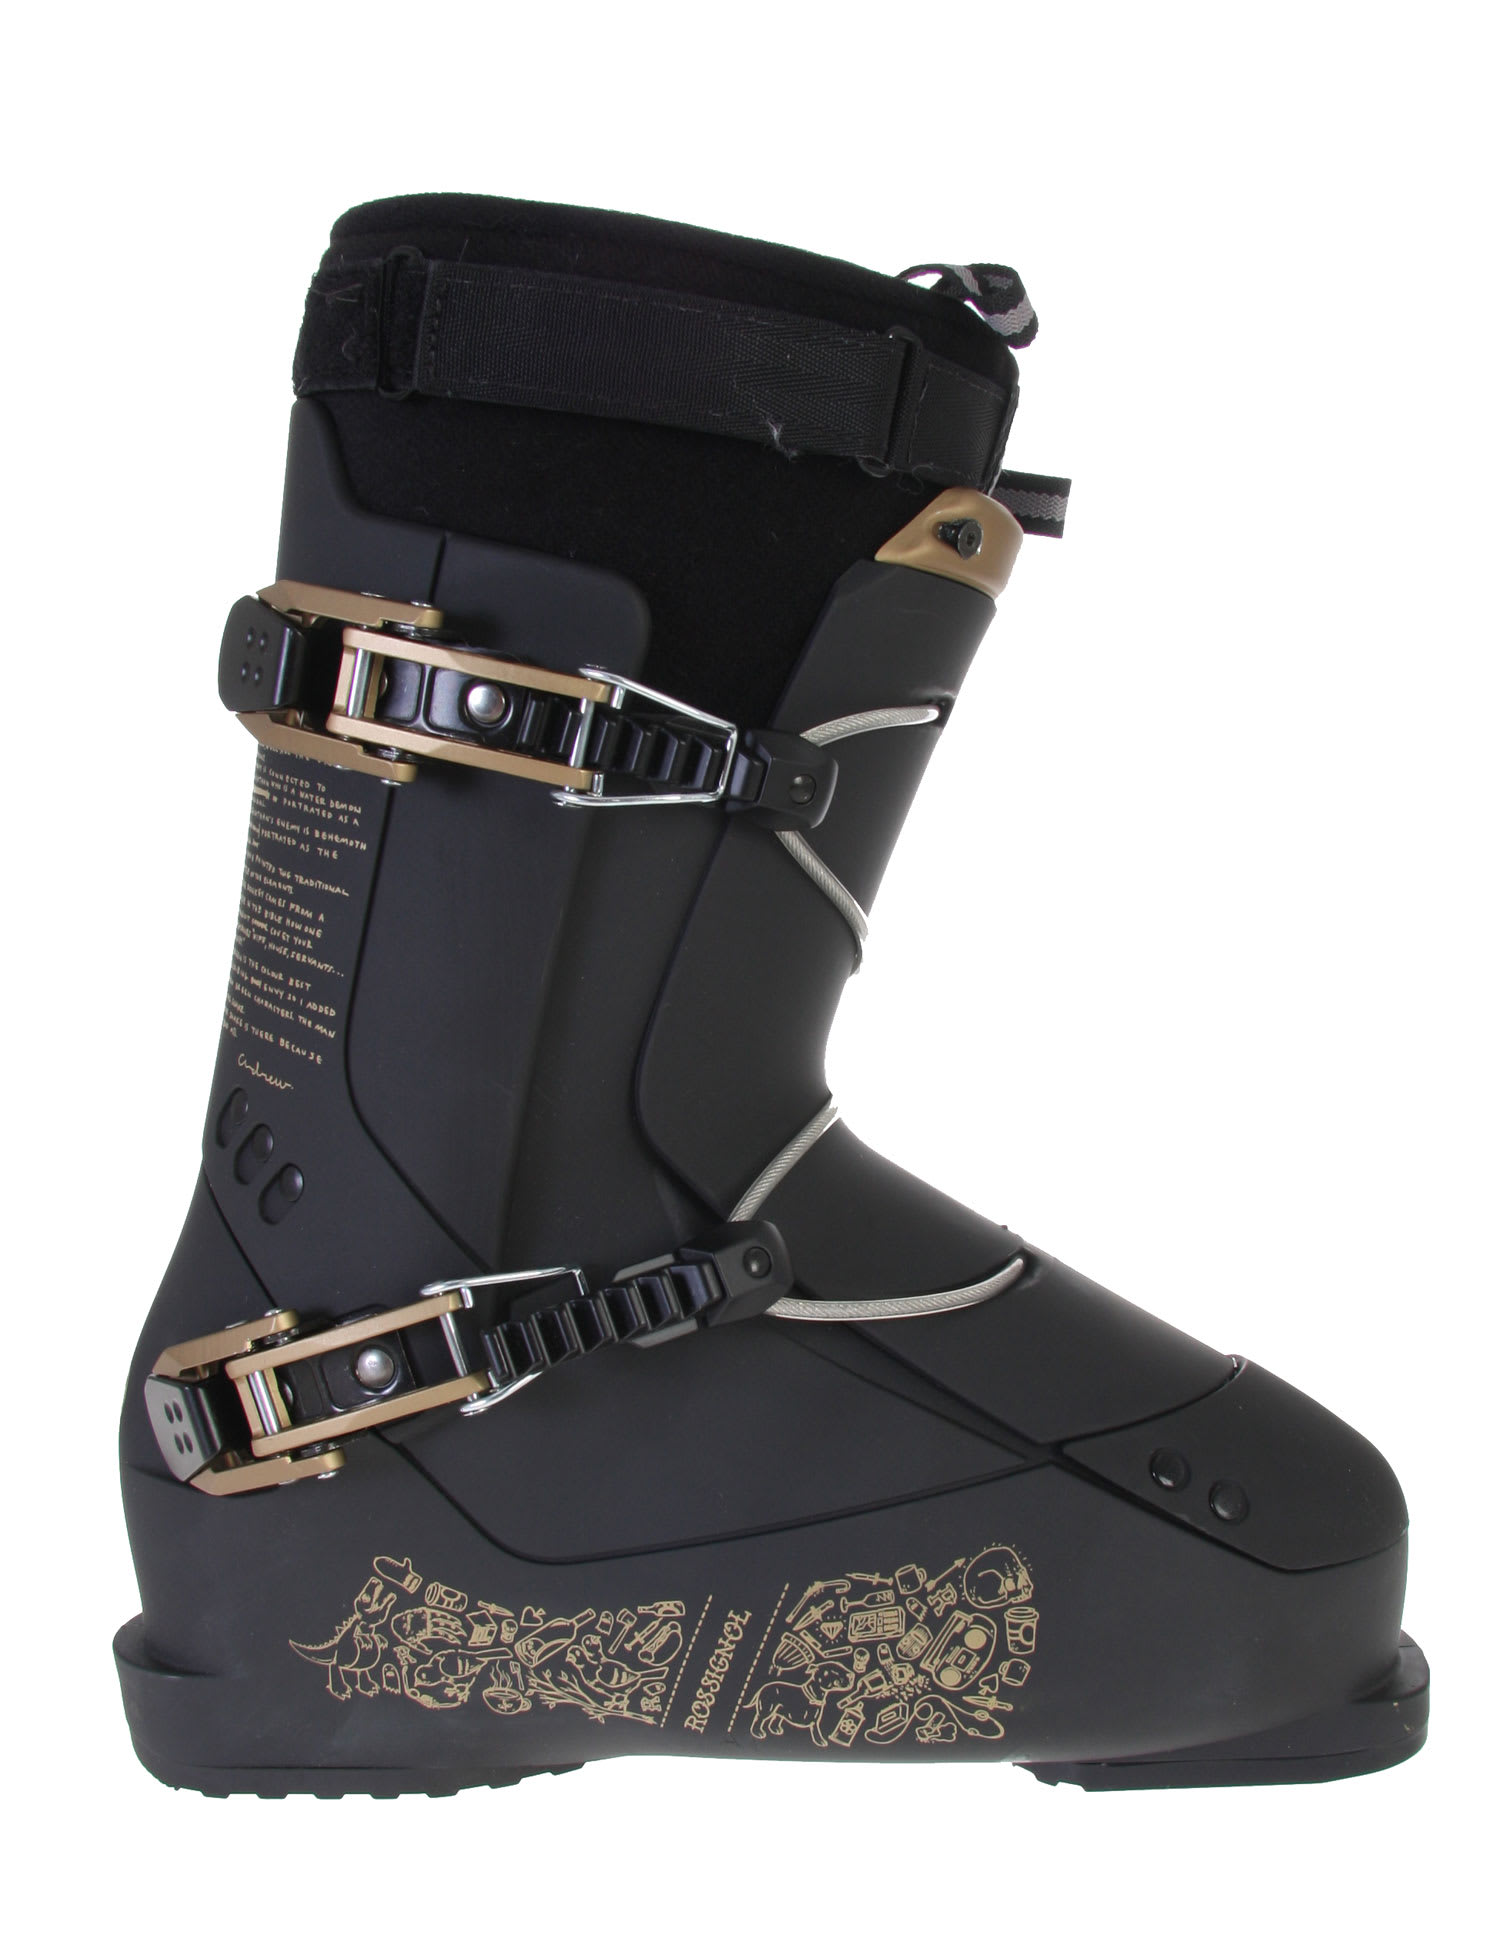 On Sale Rossignol Sas Fs1 Ski Boots Up To 75 Off